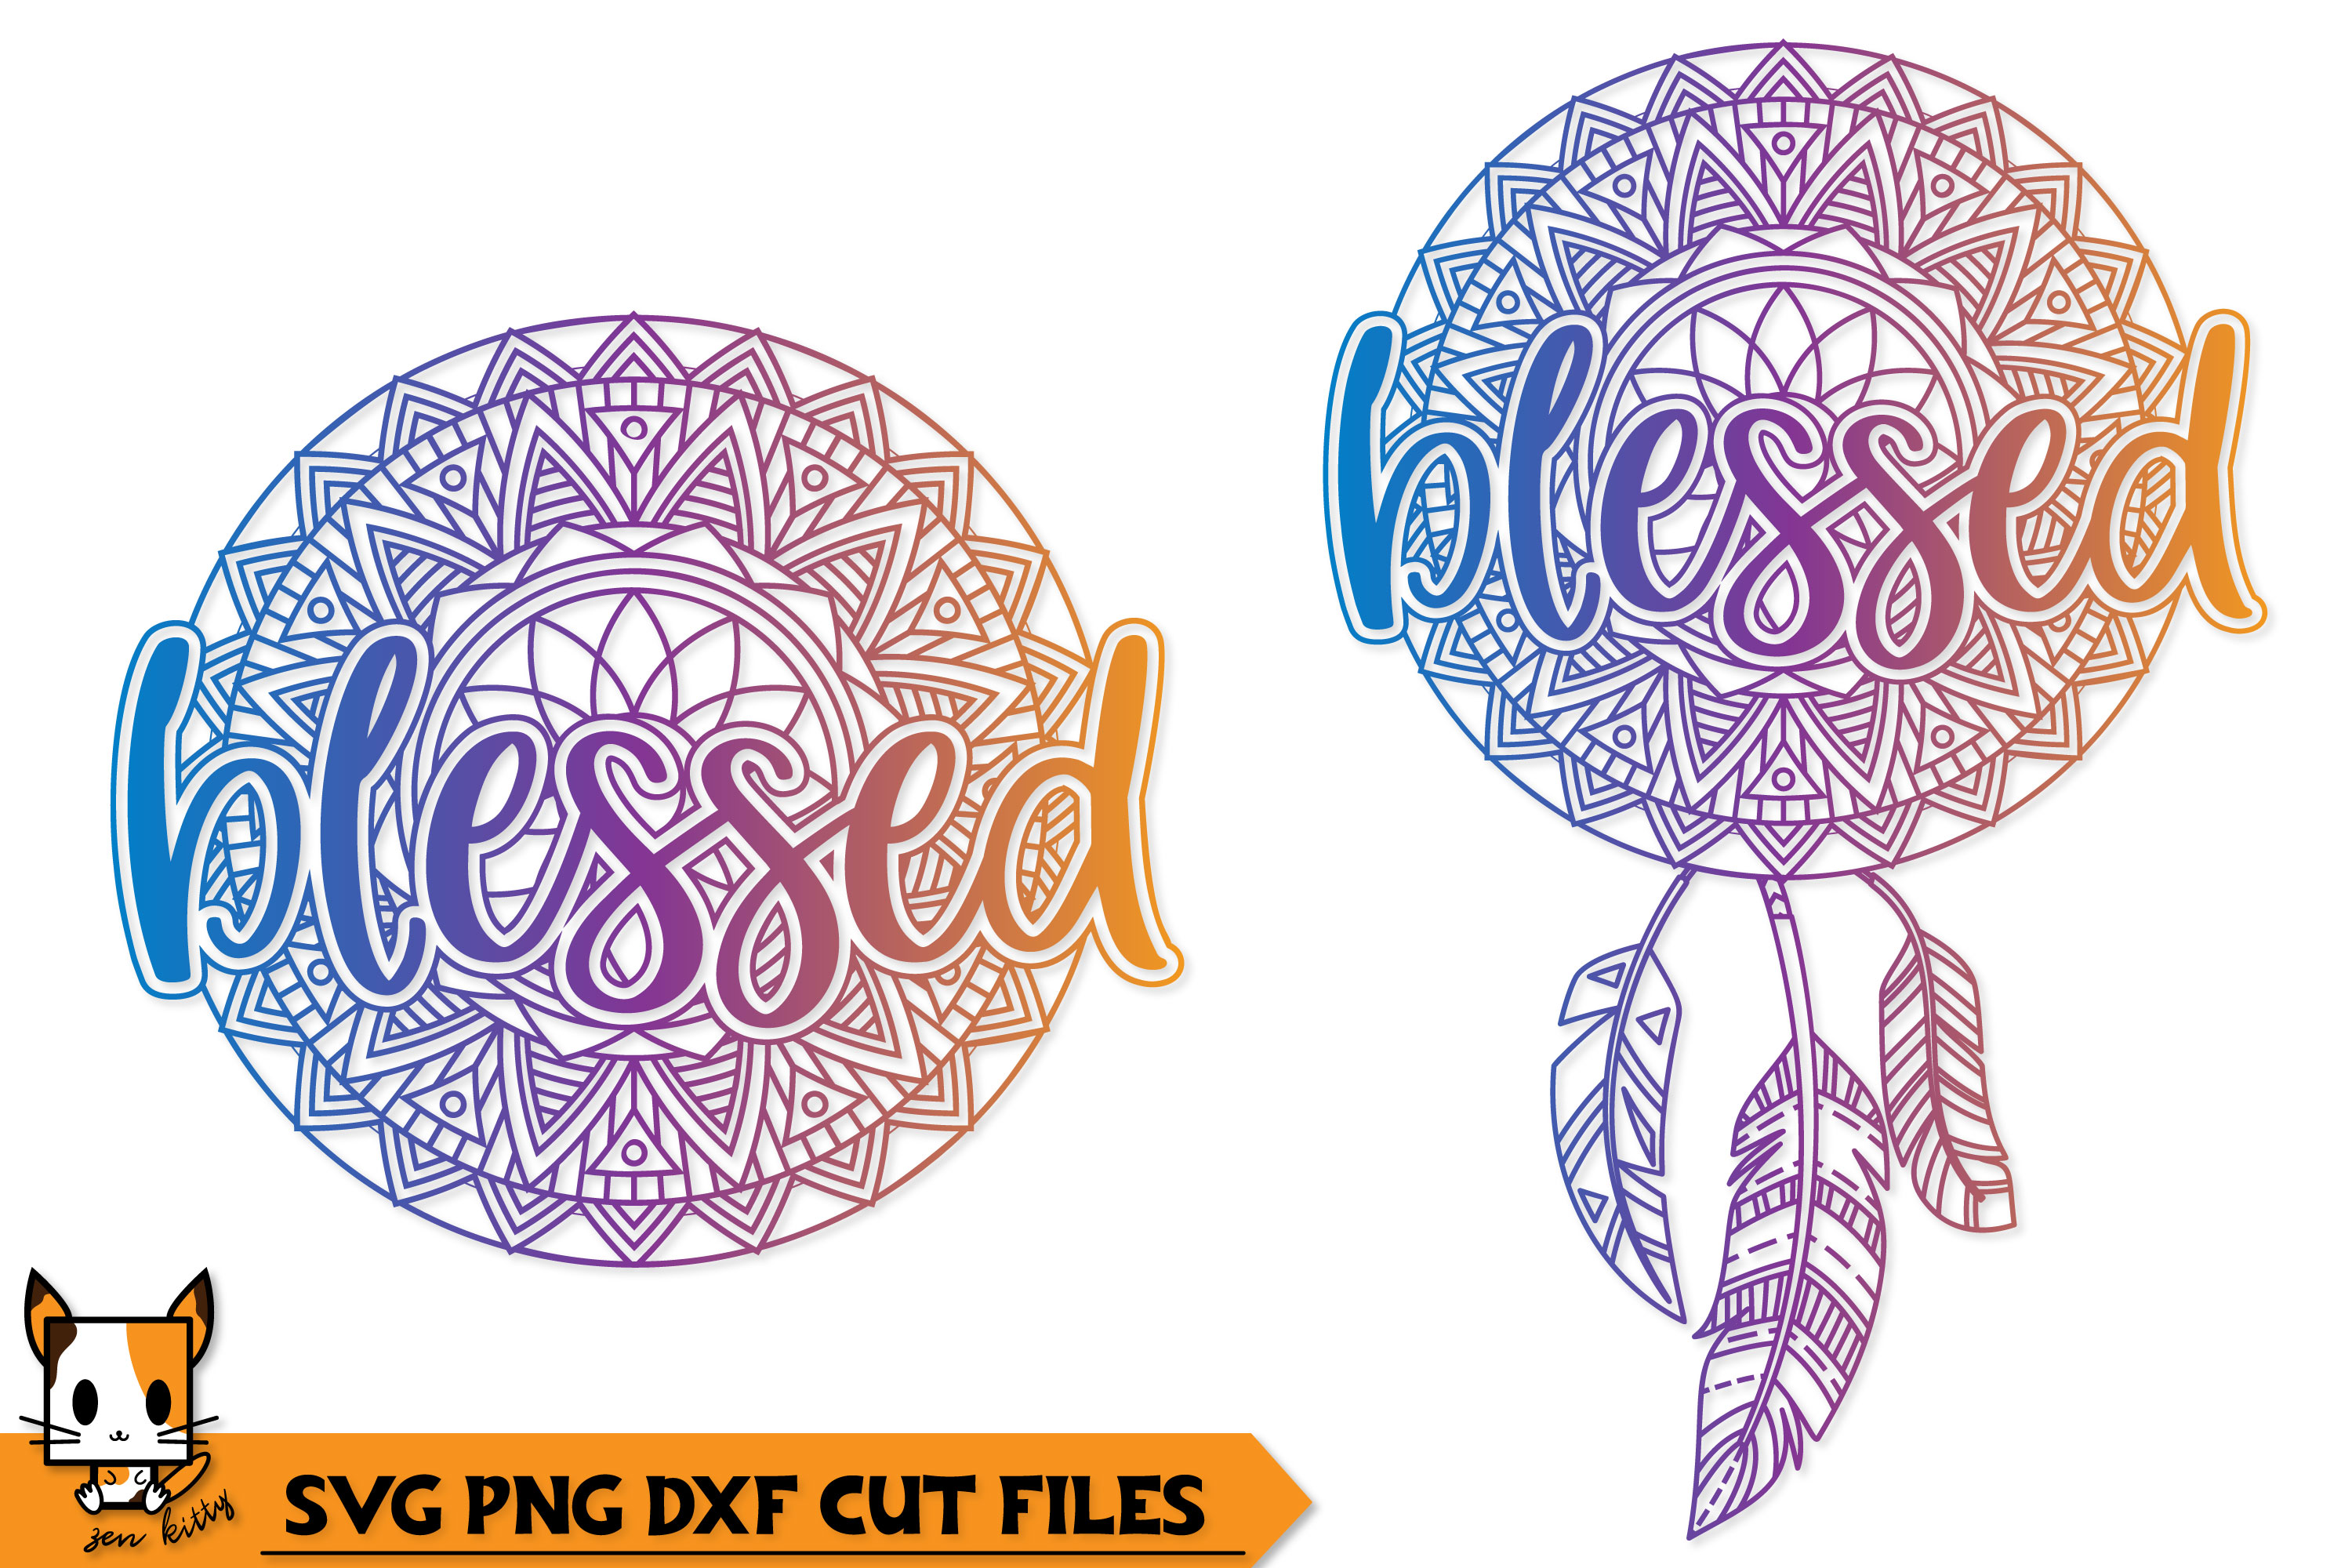 Blessed Boho Dream Catcher - Mandala SVG PNG DXF Cut Files example image 1